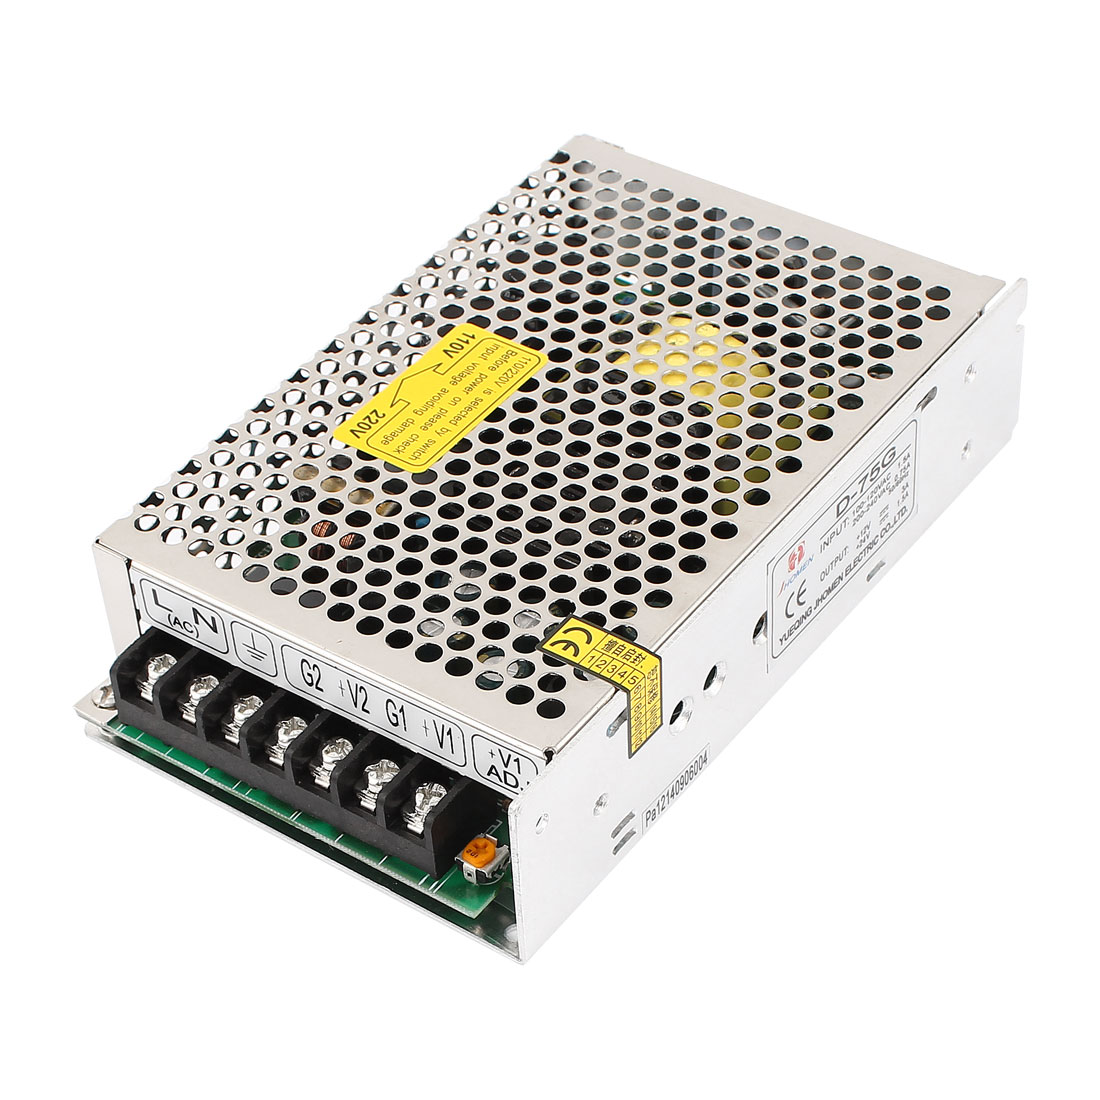 AC100V-120V 1.5A / AC200-240V 0.75A LED Regulated Switching Power Supply Converter D-75G